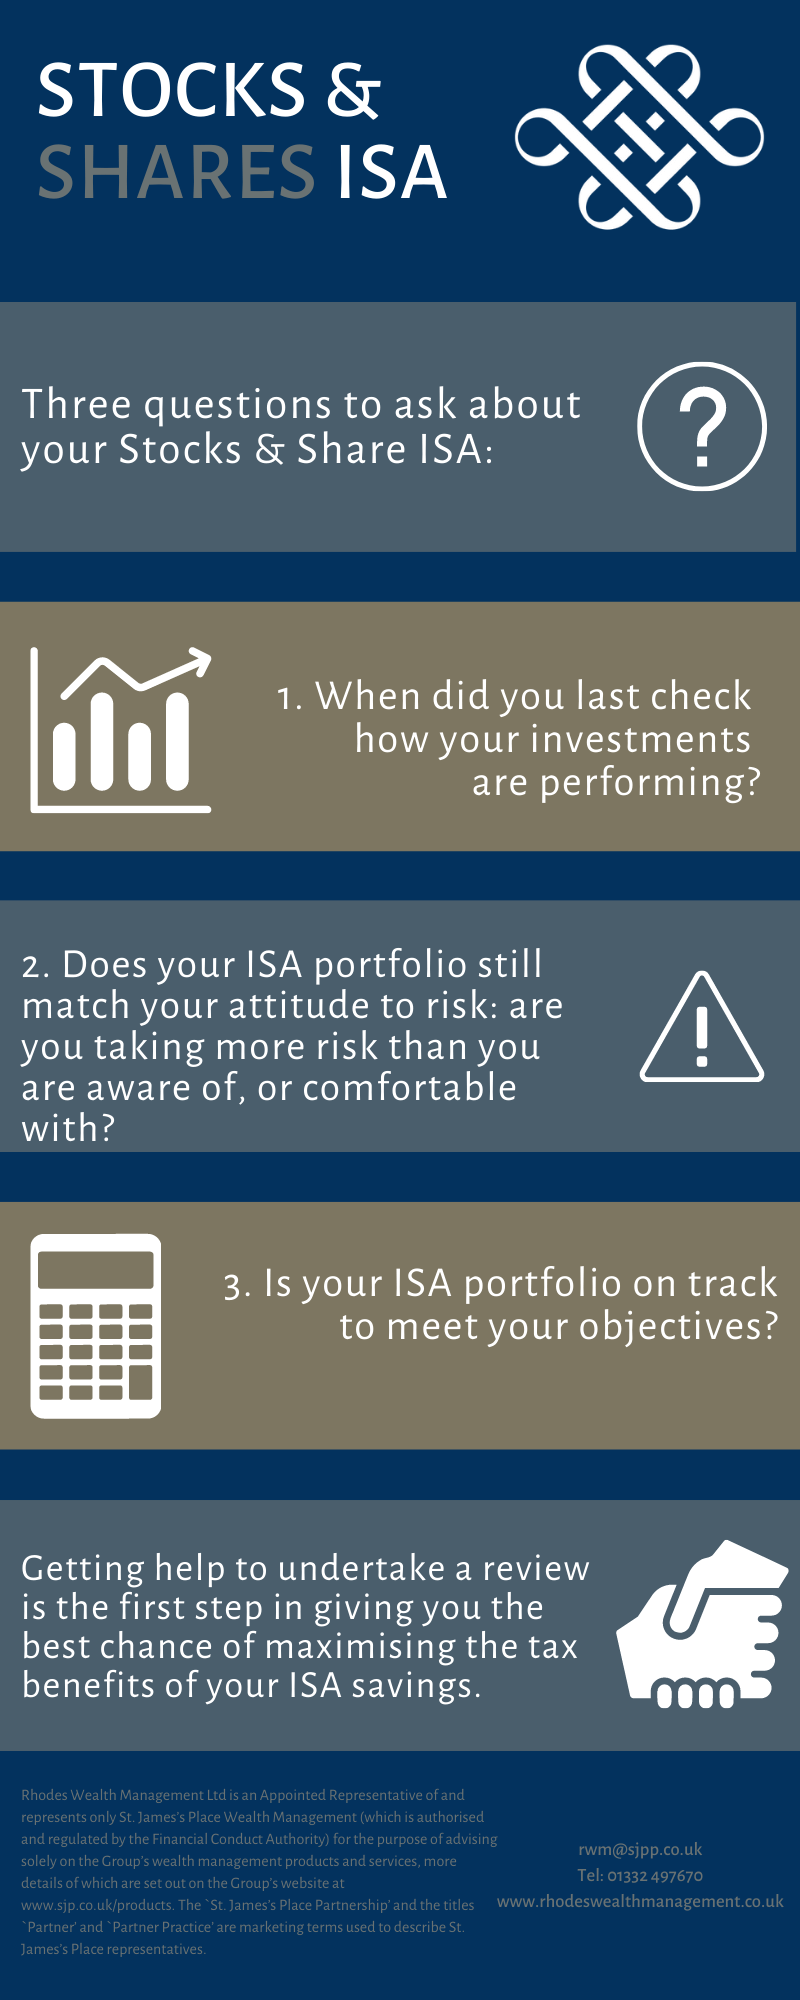 Stocks and Shares ISA Performance